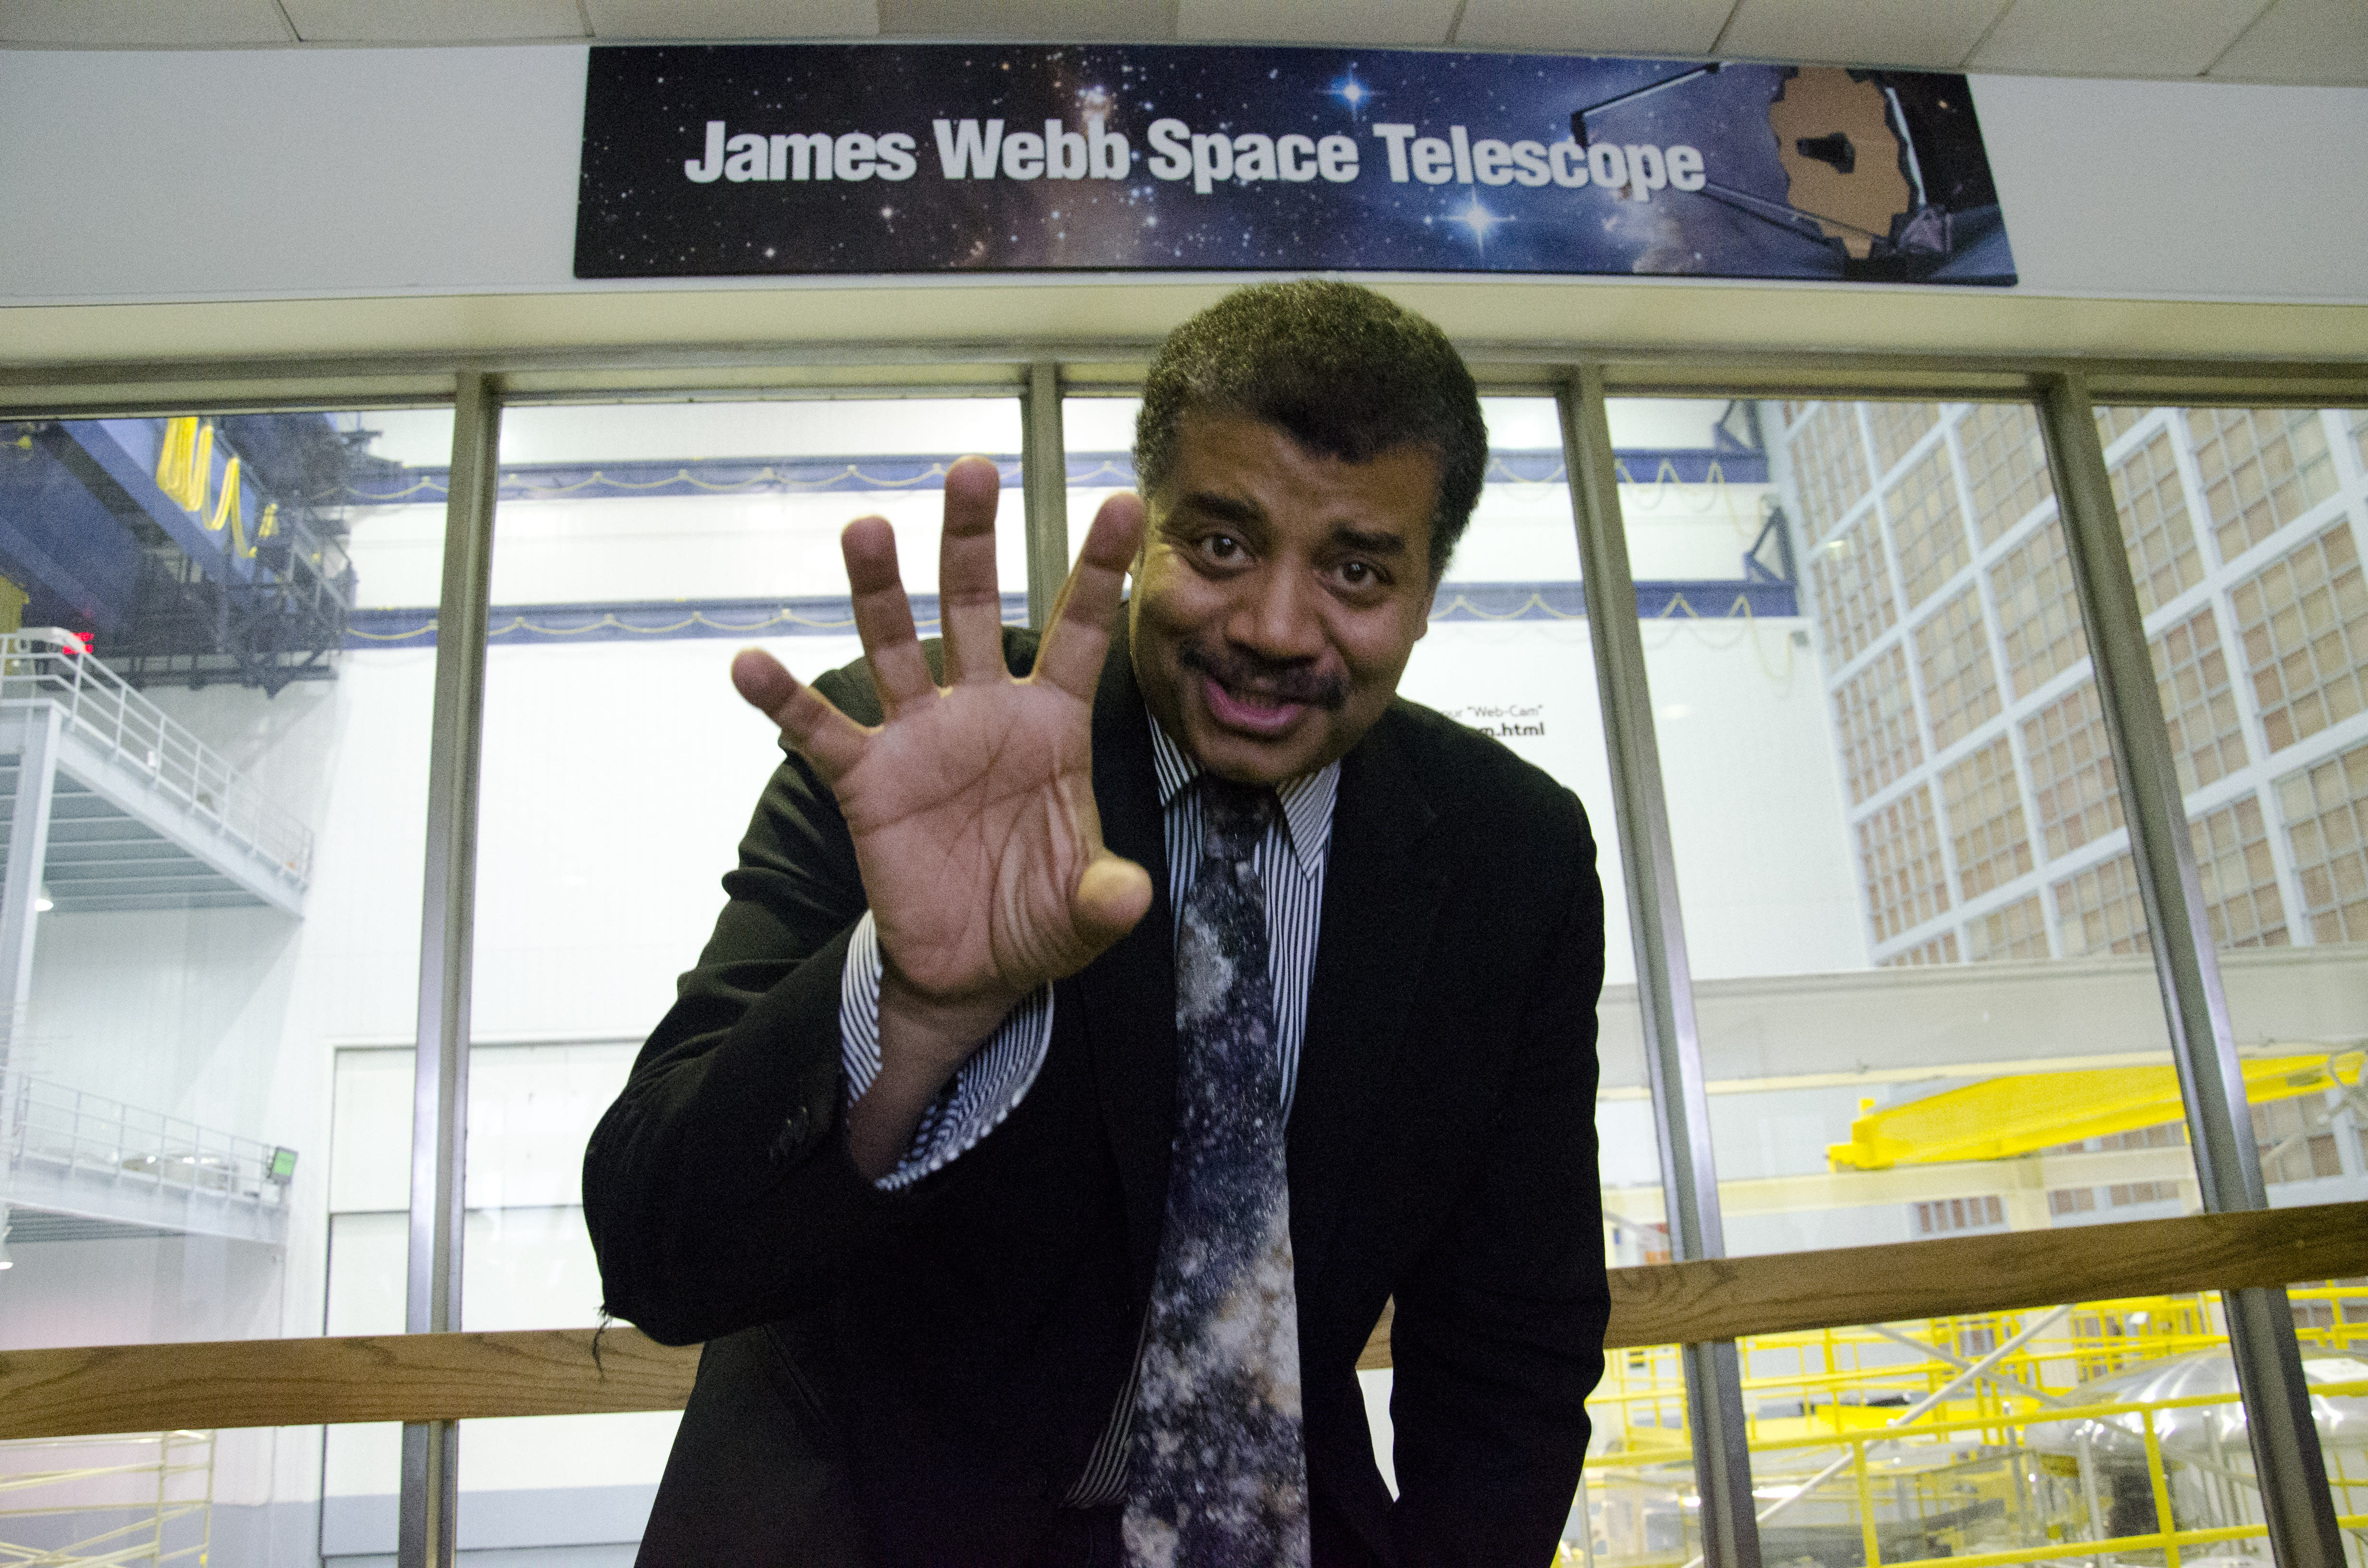 You'll never guess what Neil deGrasse Tyson's favorite equation of Einstein's is